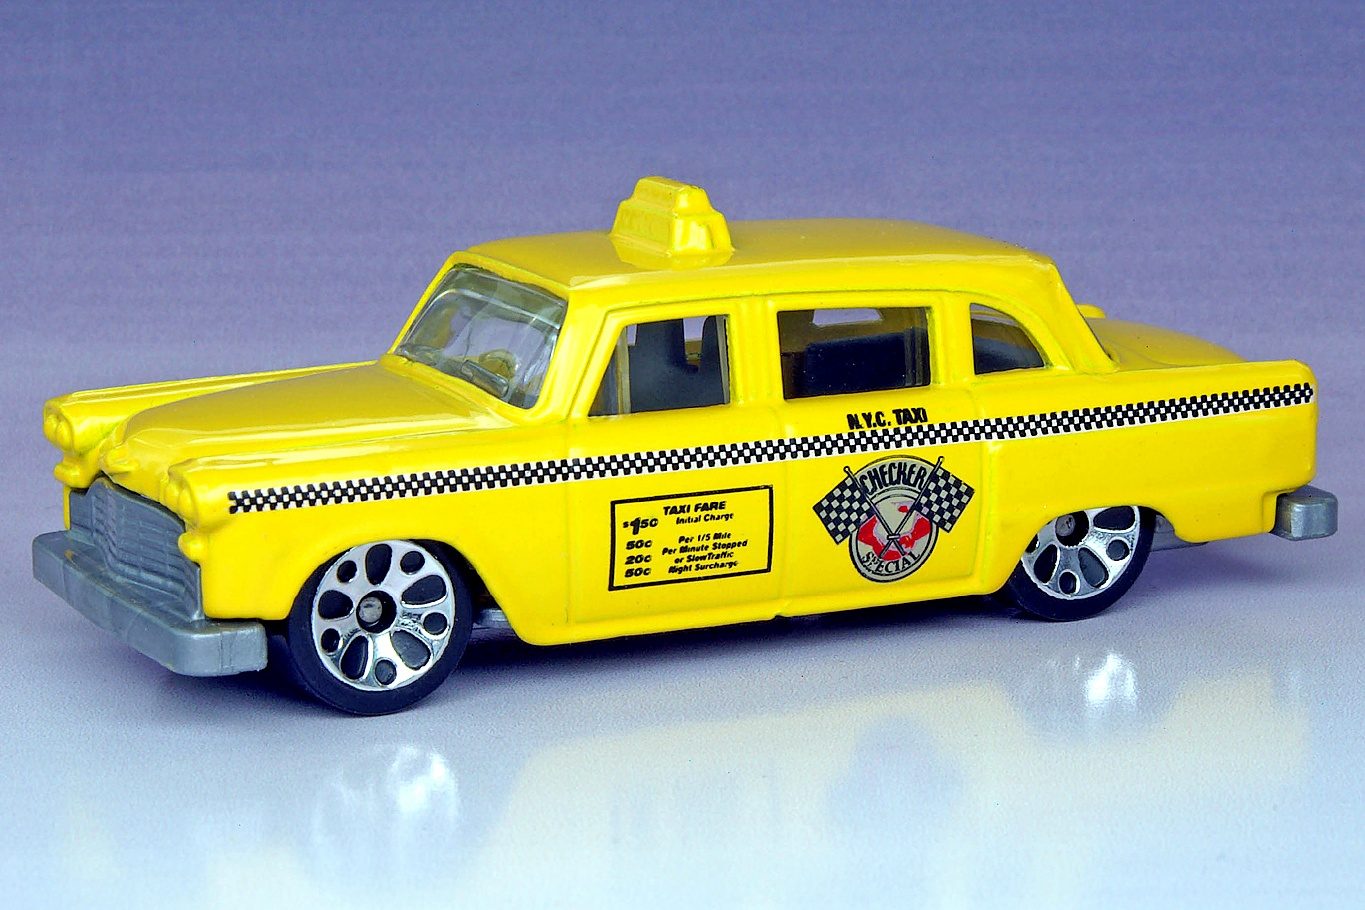 Jc motors official top 5 matchbox vehicles you must own for Jc motors used cars